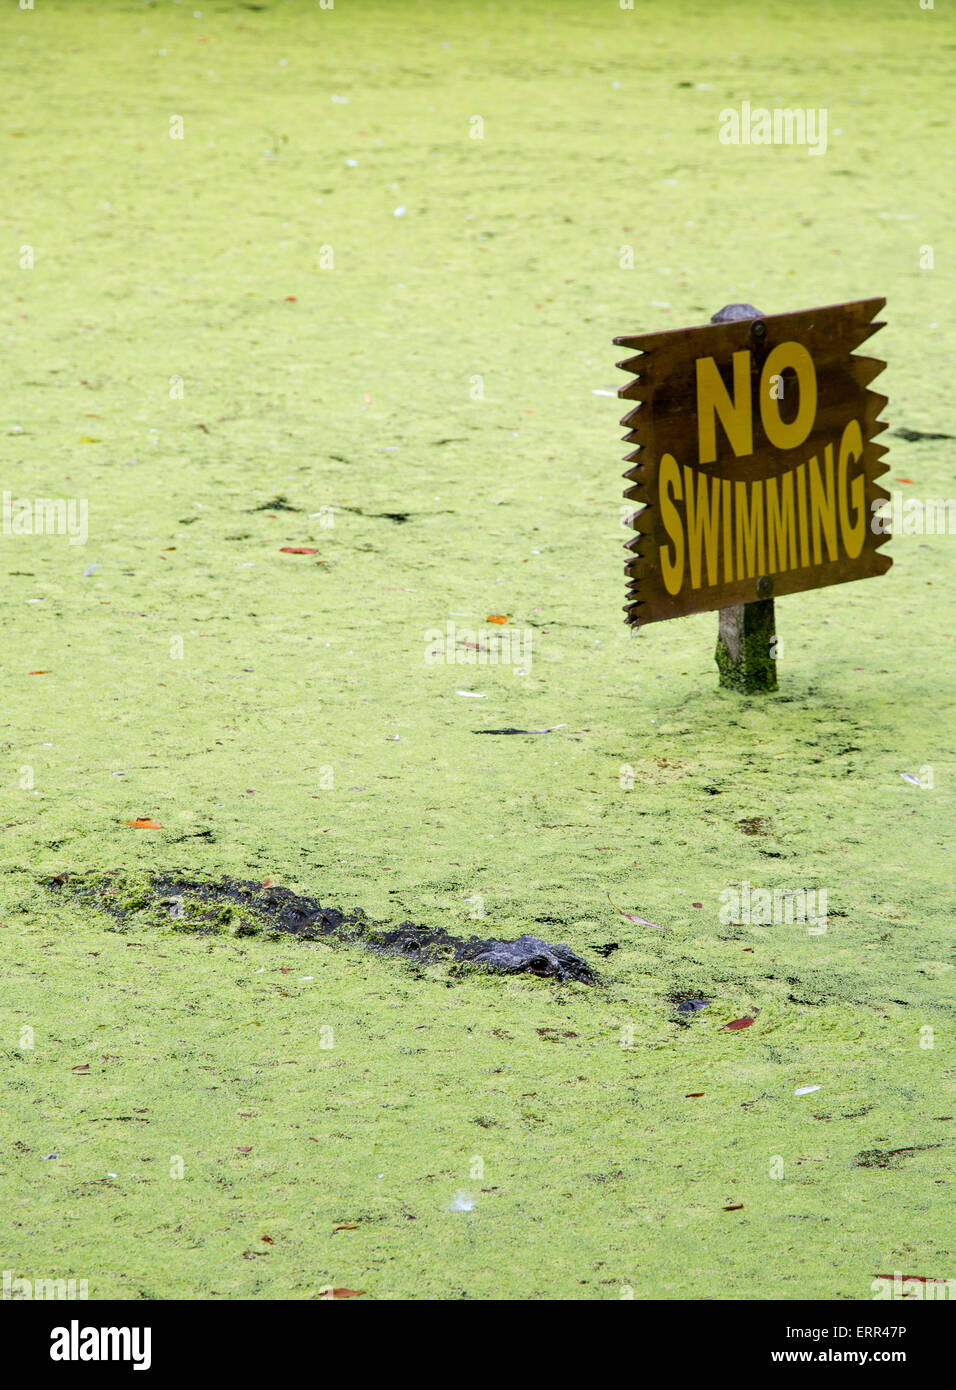 Homosassa Springs, Florida - An alligator in a lagoon next to a 'No Swimming' sign at Homosassa Springs - Stock Image